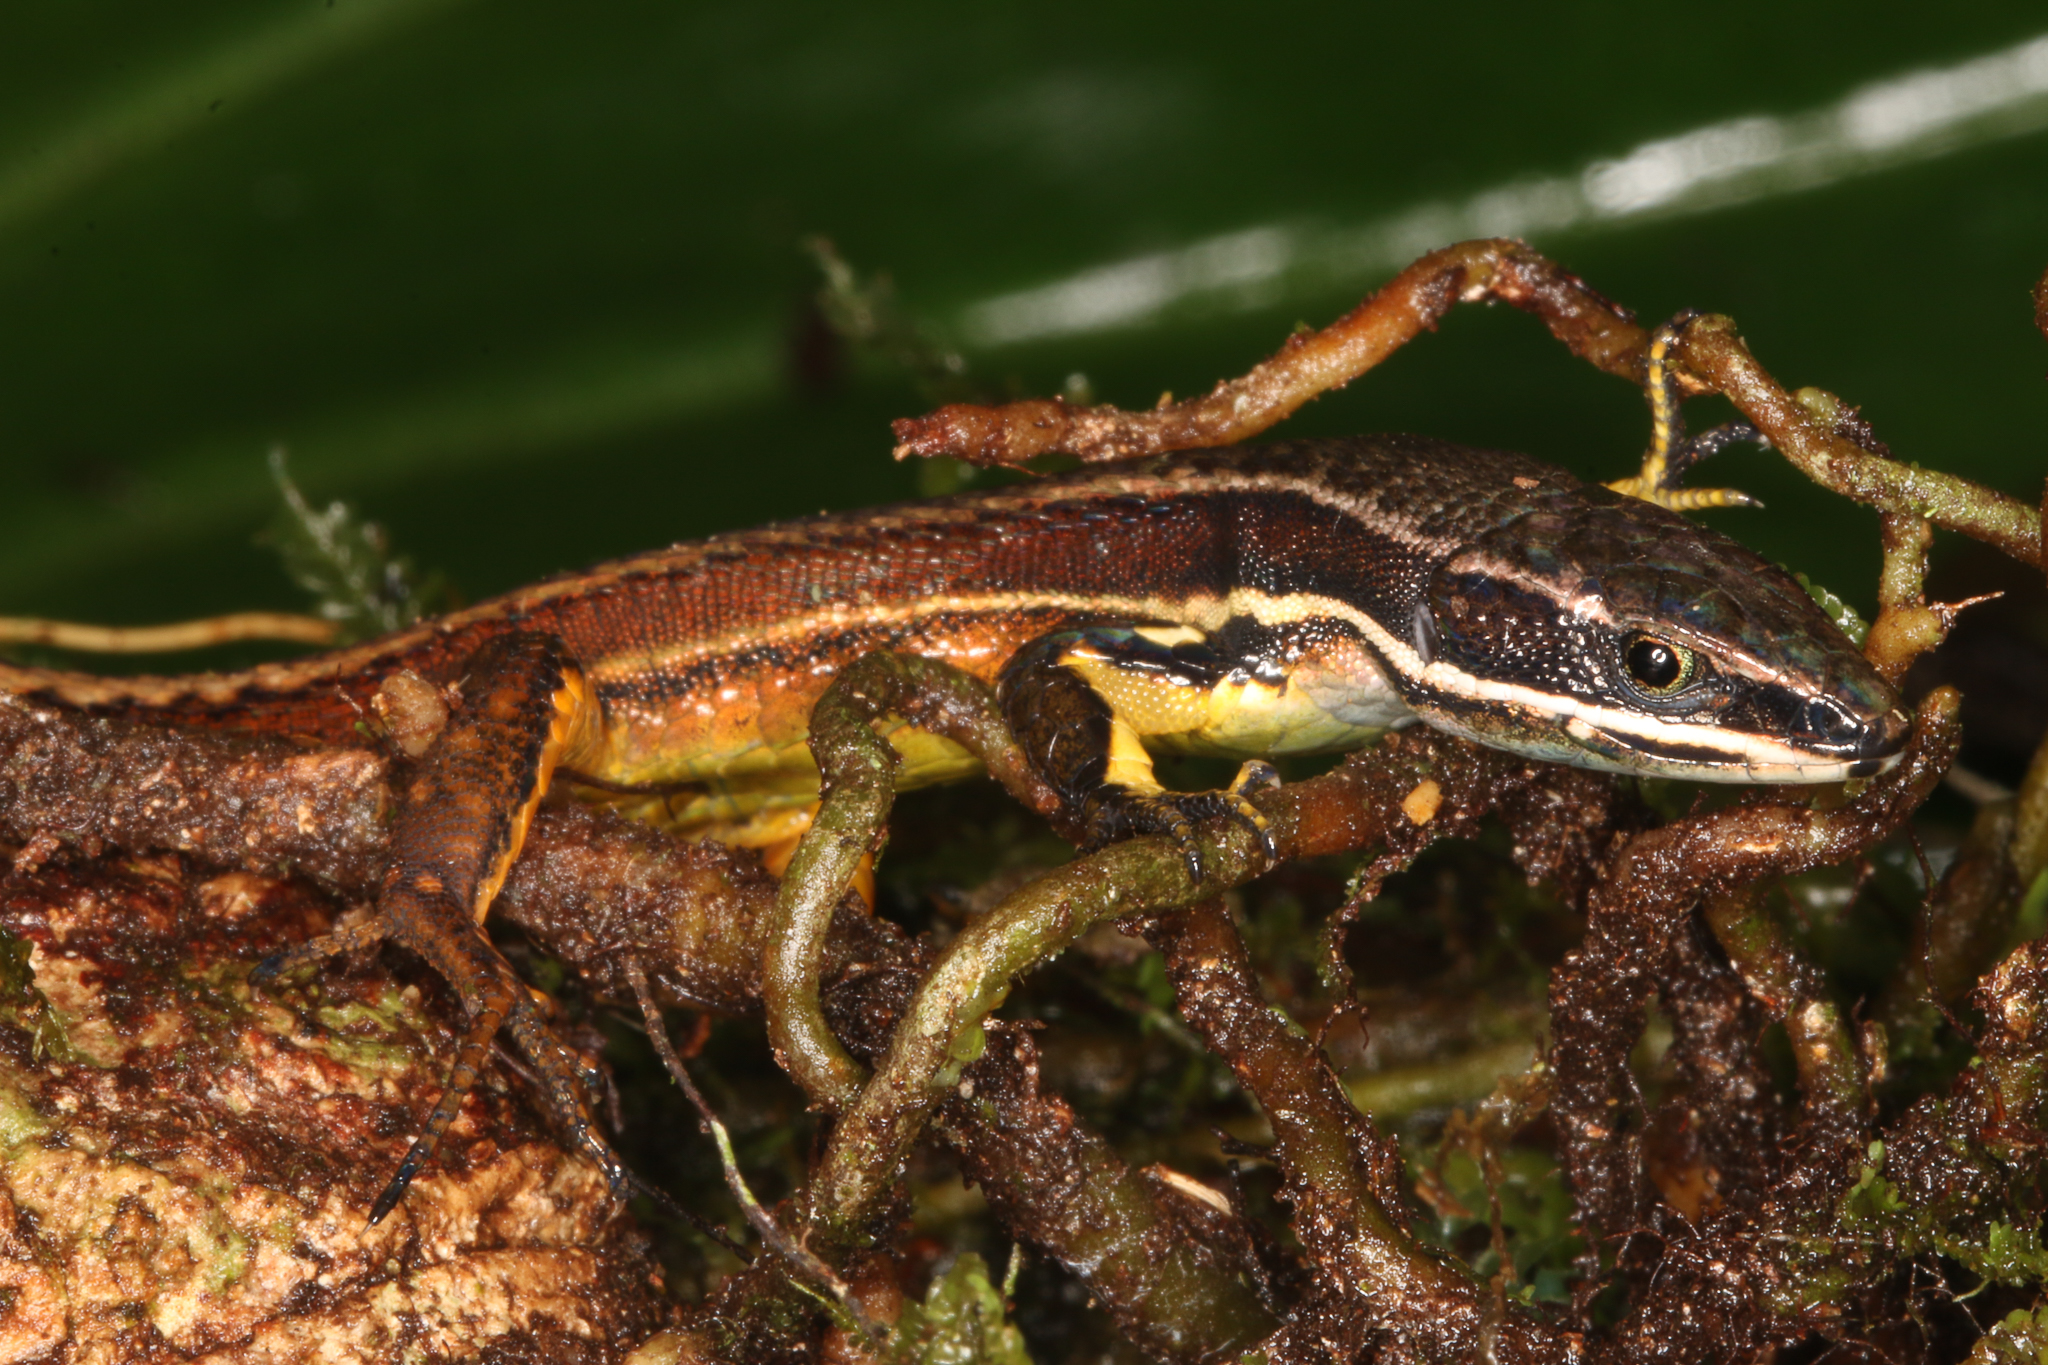 A new species of lizard in the genus Macropholidus, discovered near Camp 1. Photo by Juan C. Chaparro